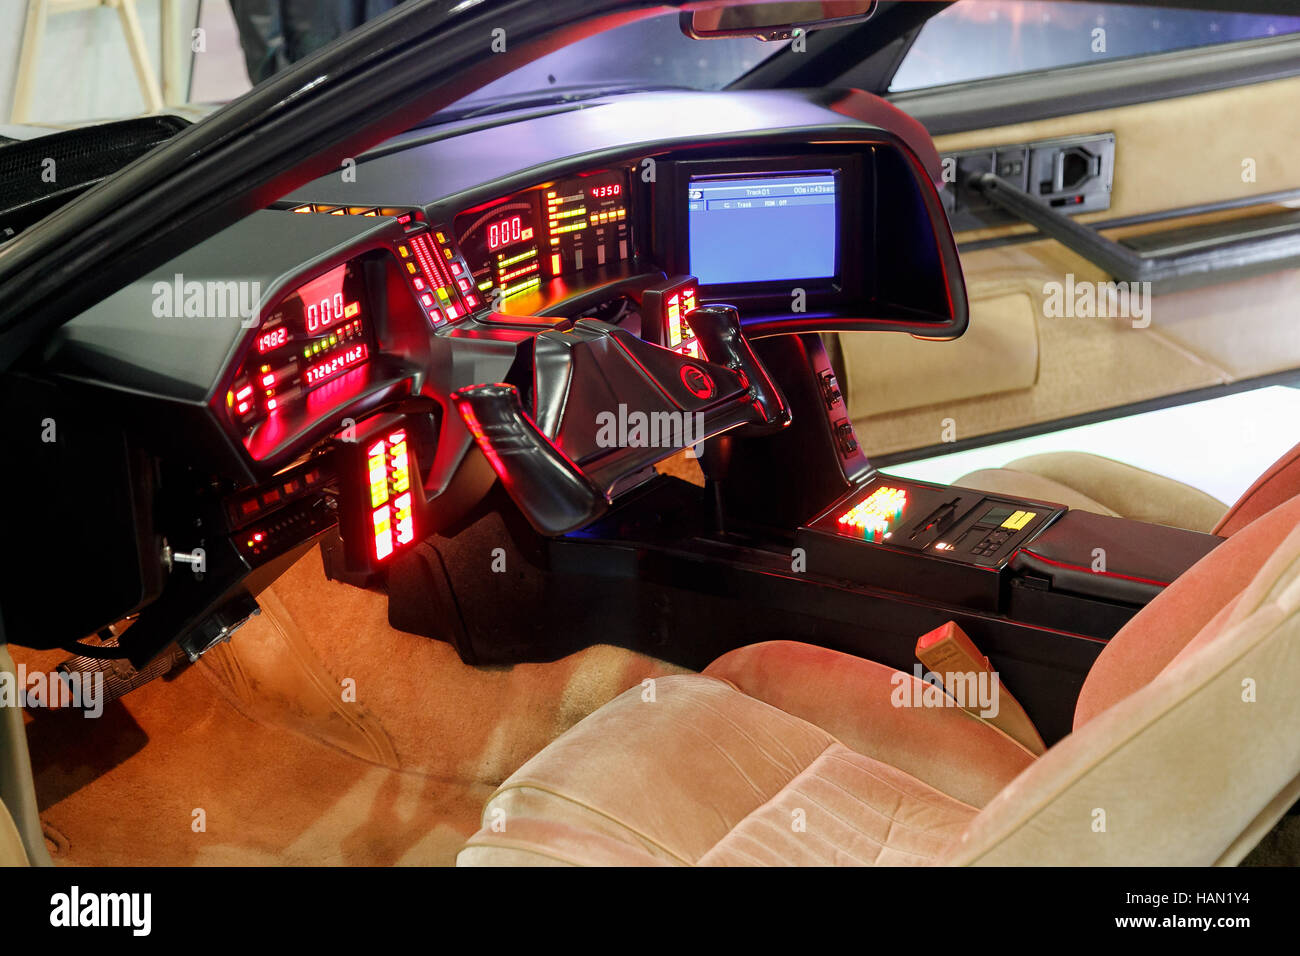 Replica Knight Rider Car Up For Sale On Craigslist: Tokyo, Japan. 2nd Dec, 2016. A Replica Of The KITT Car